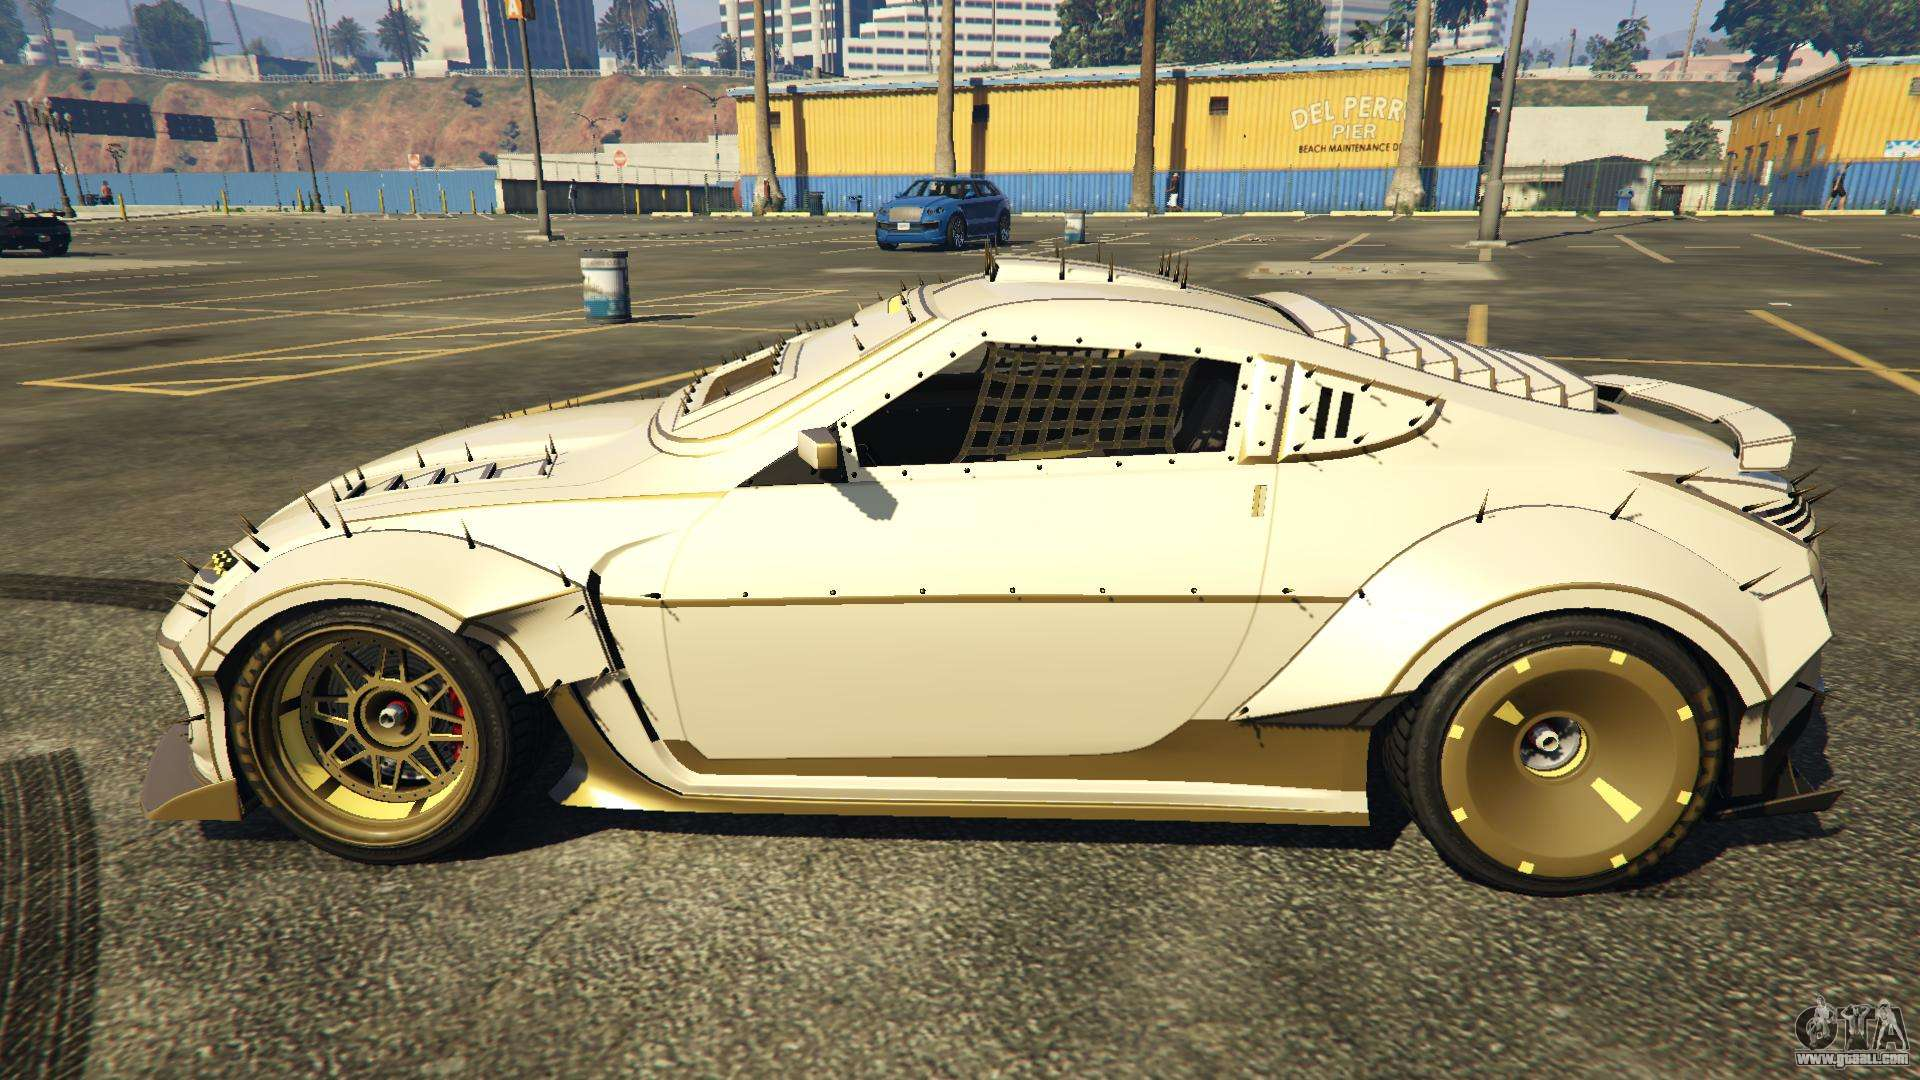 Annis Future Shock Zr380 In Gta 5 Online Where To Find And To Buy And Sell In Real Life Description